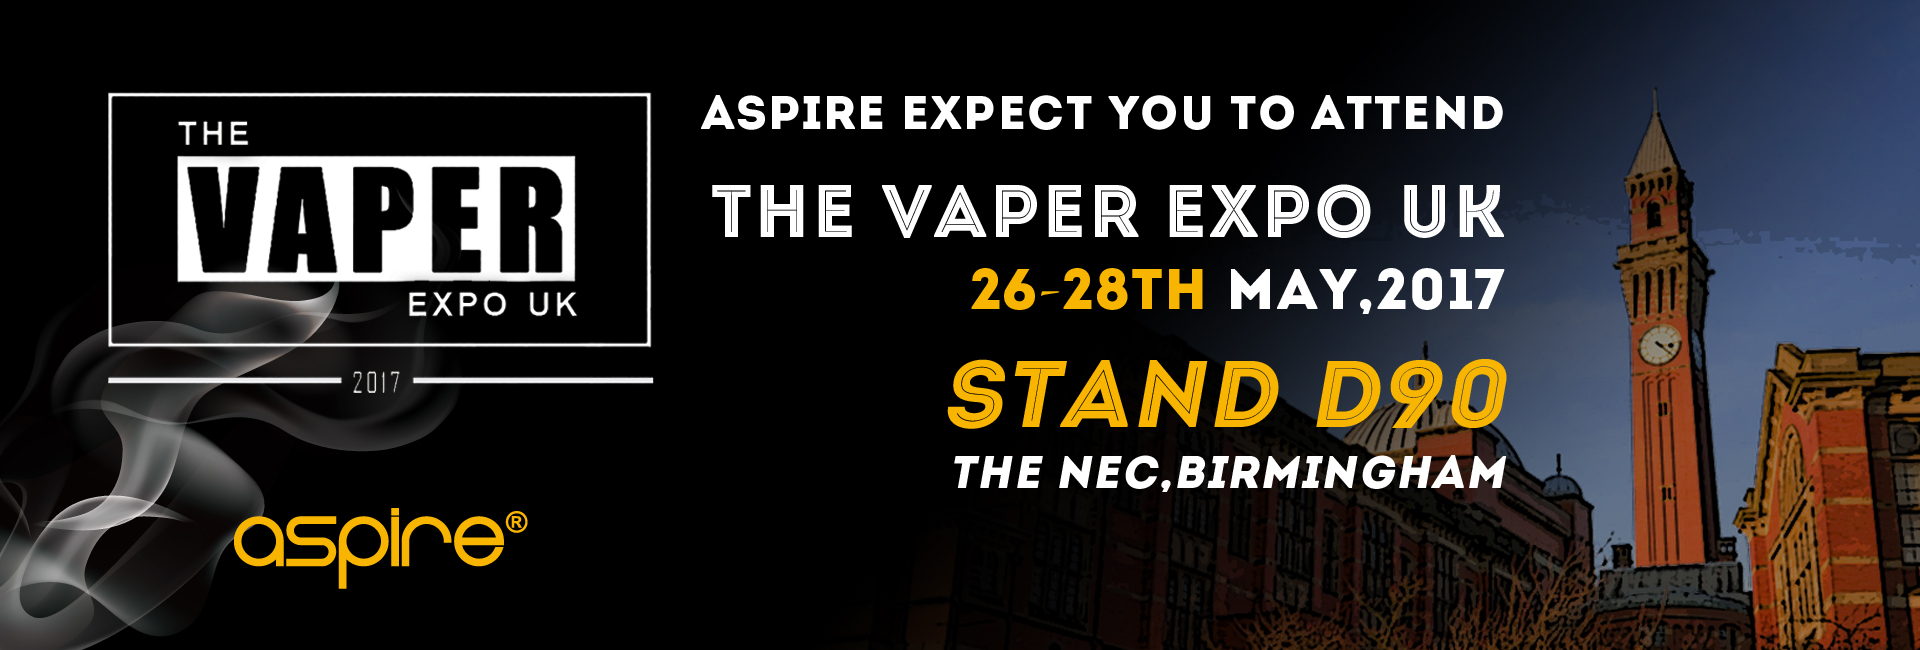 vaper uk expo